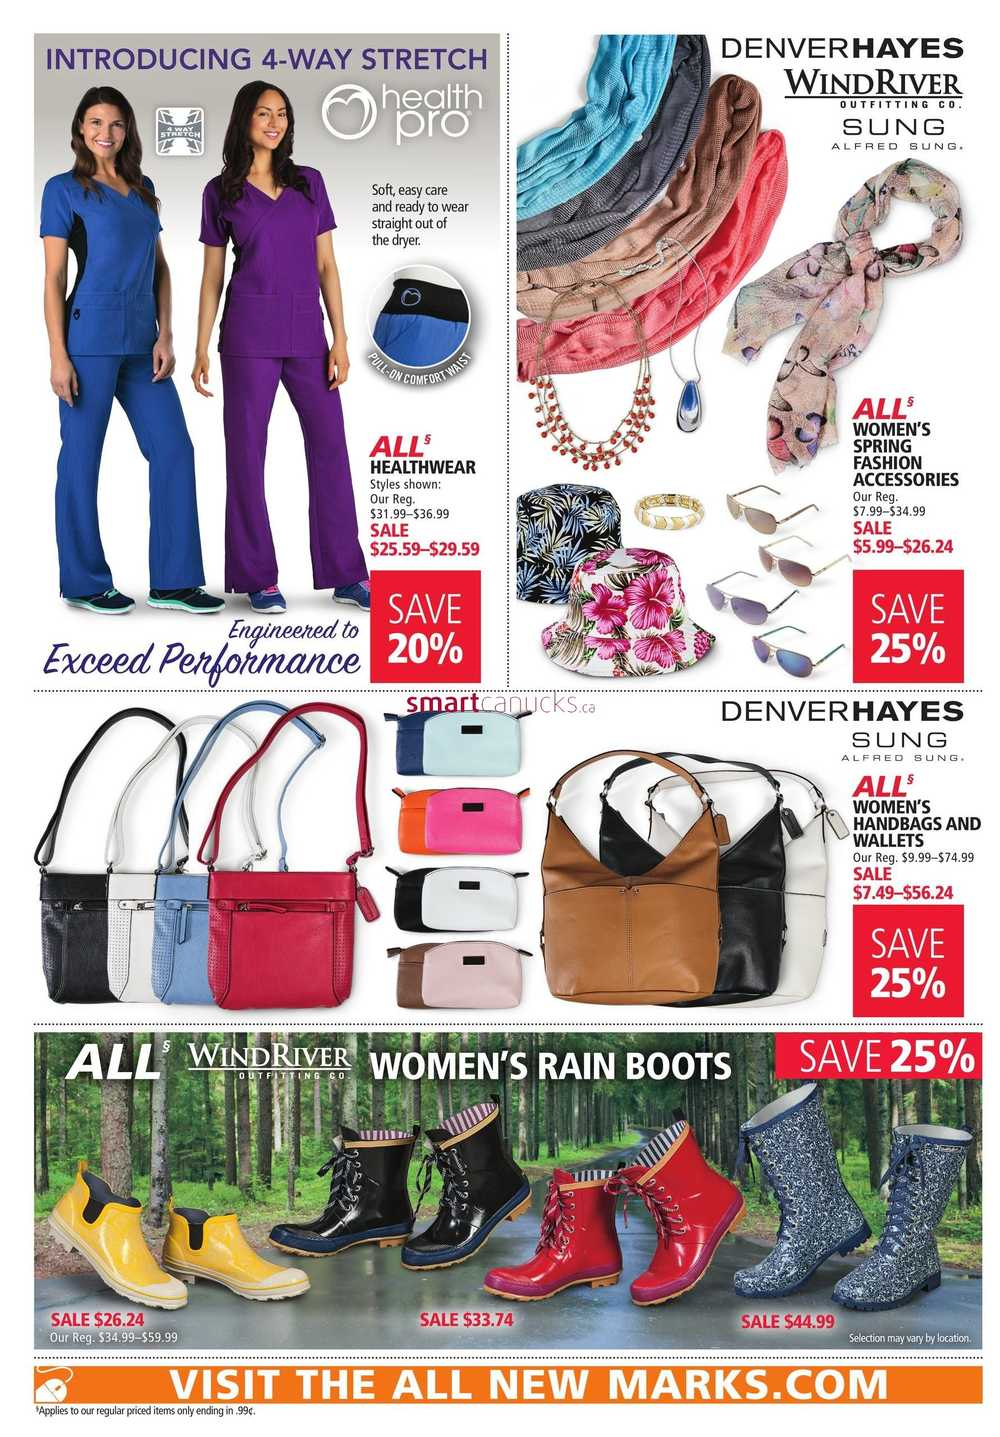 Discounts average $14 off with a Mark's promo code or coupon. 14 Mark's coupons now on RetailMeNot.